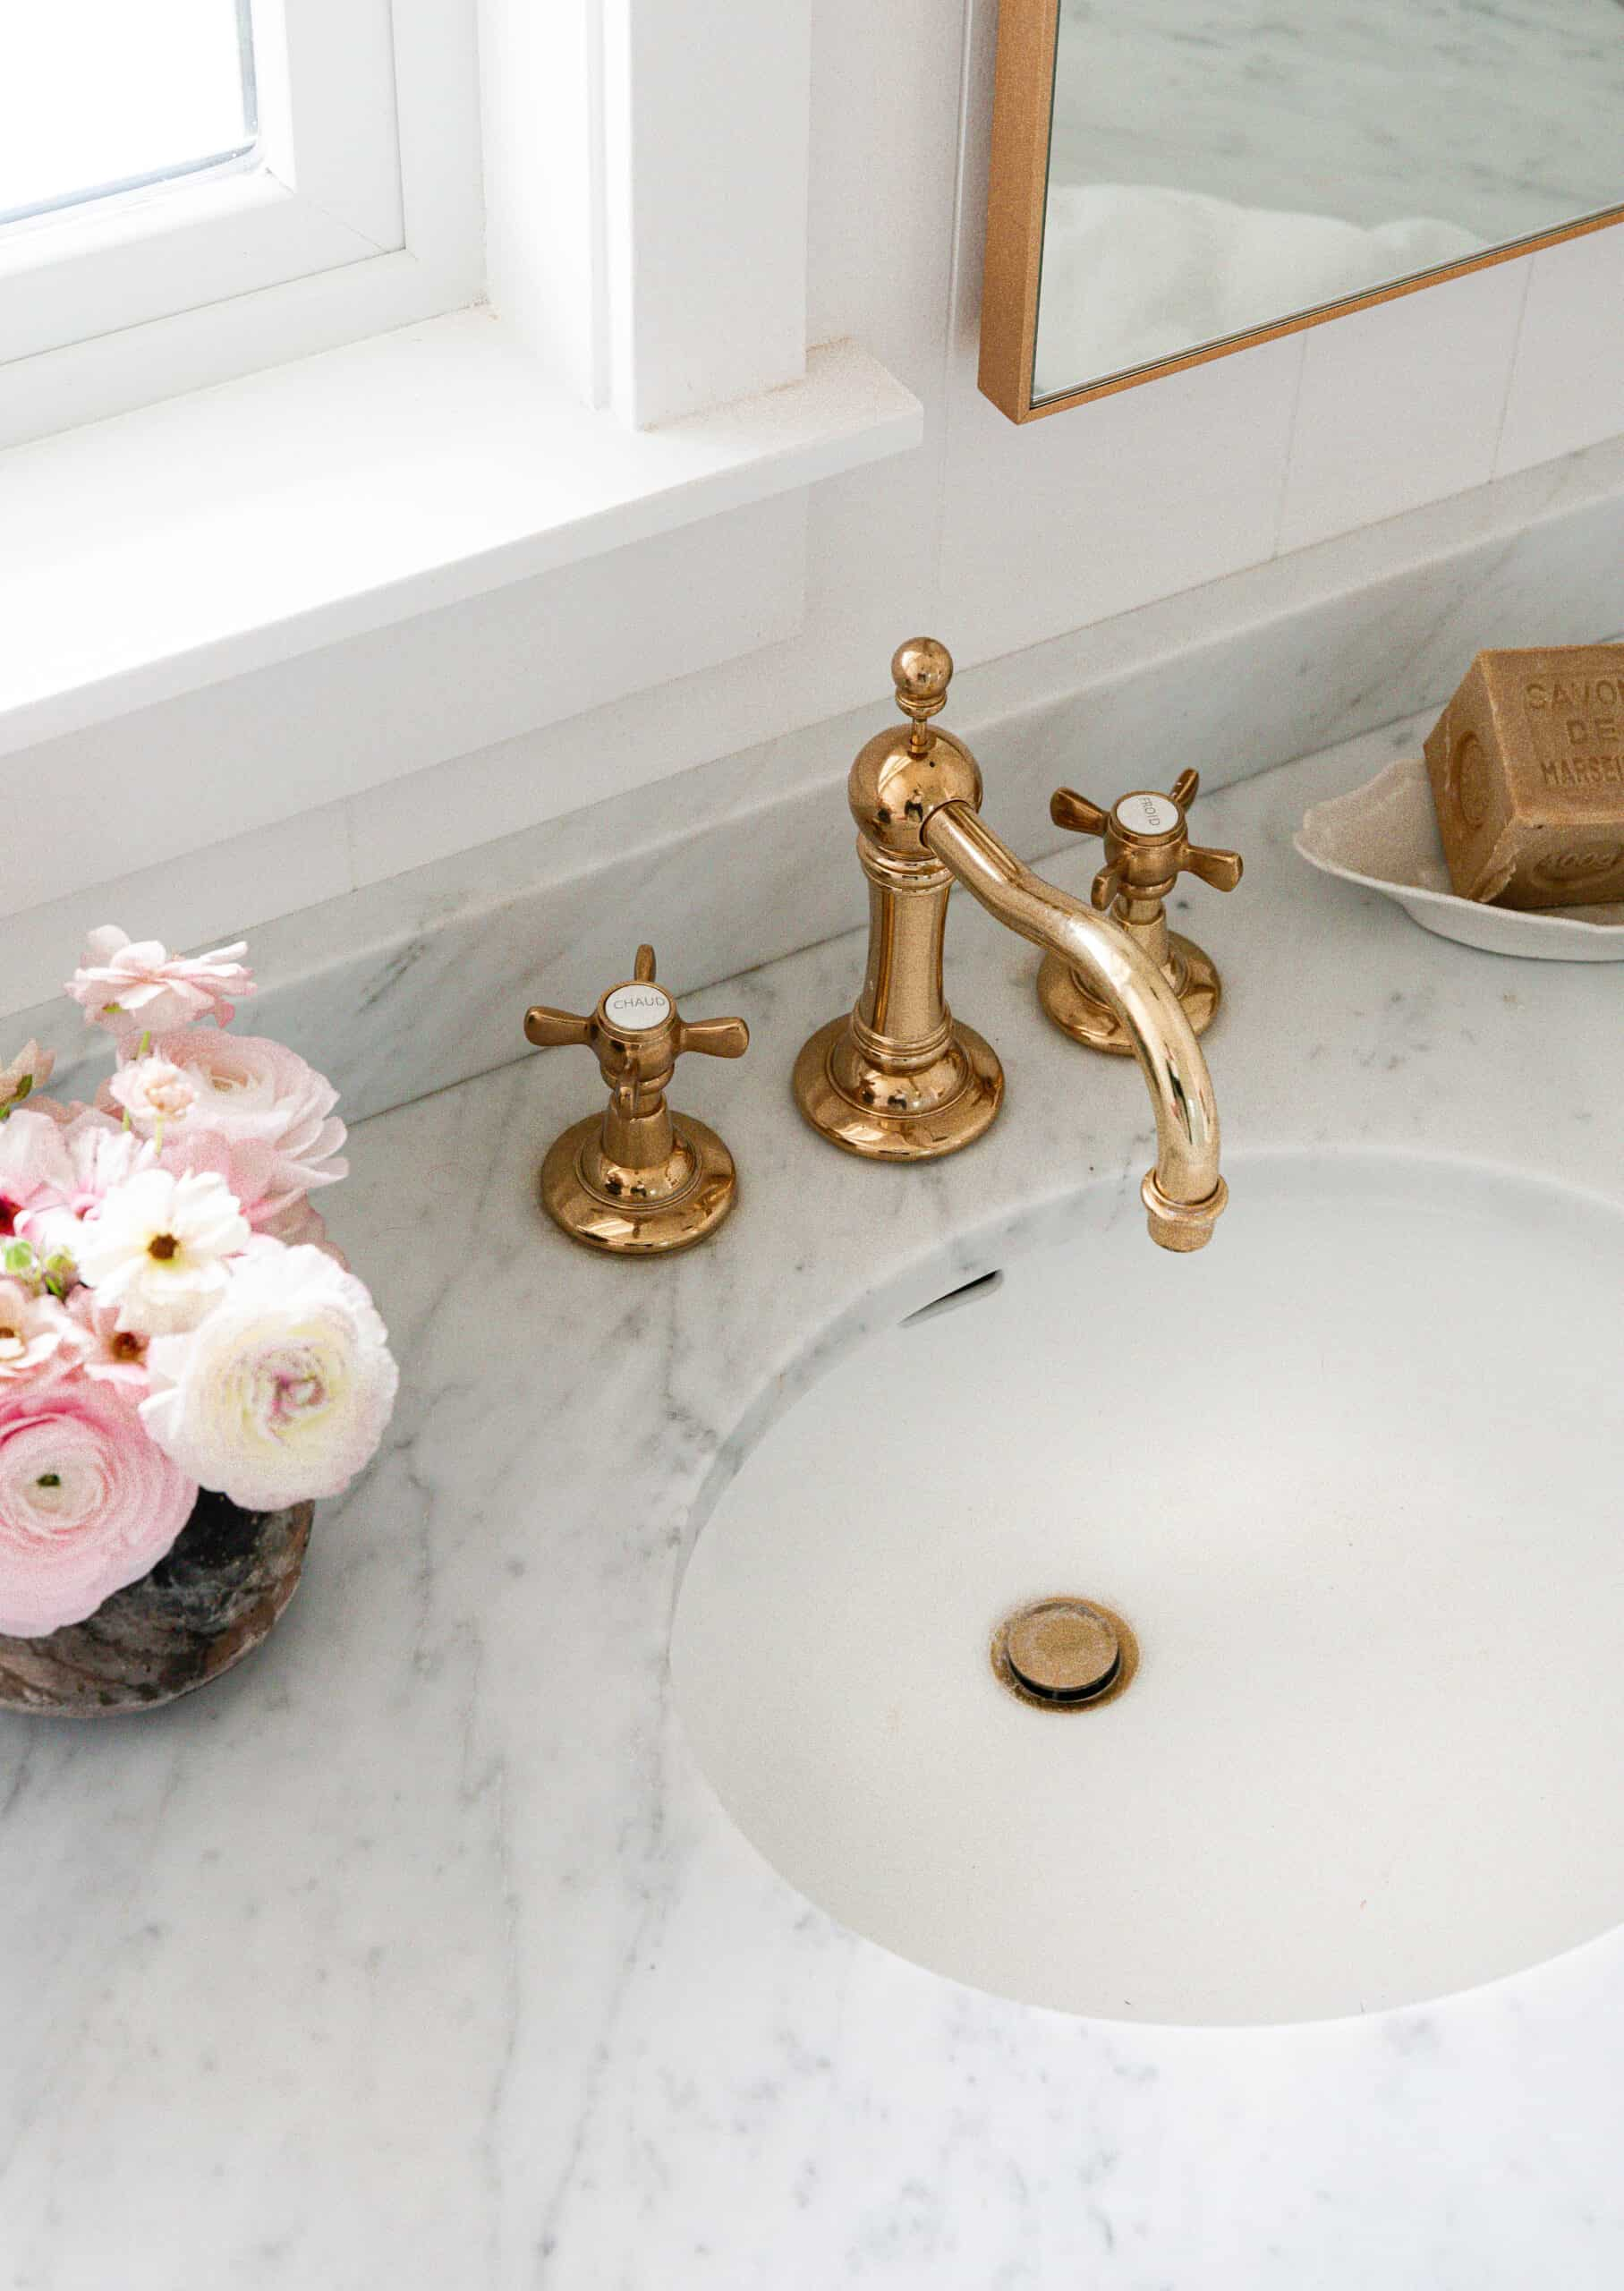 The Best Brass Faucet For Your Bathroom, Unlacquered Brass Bathroom Faucet